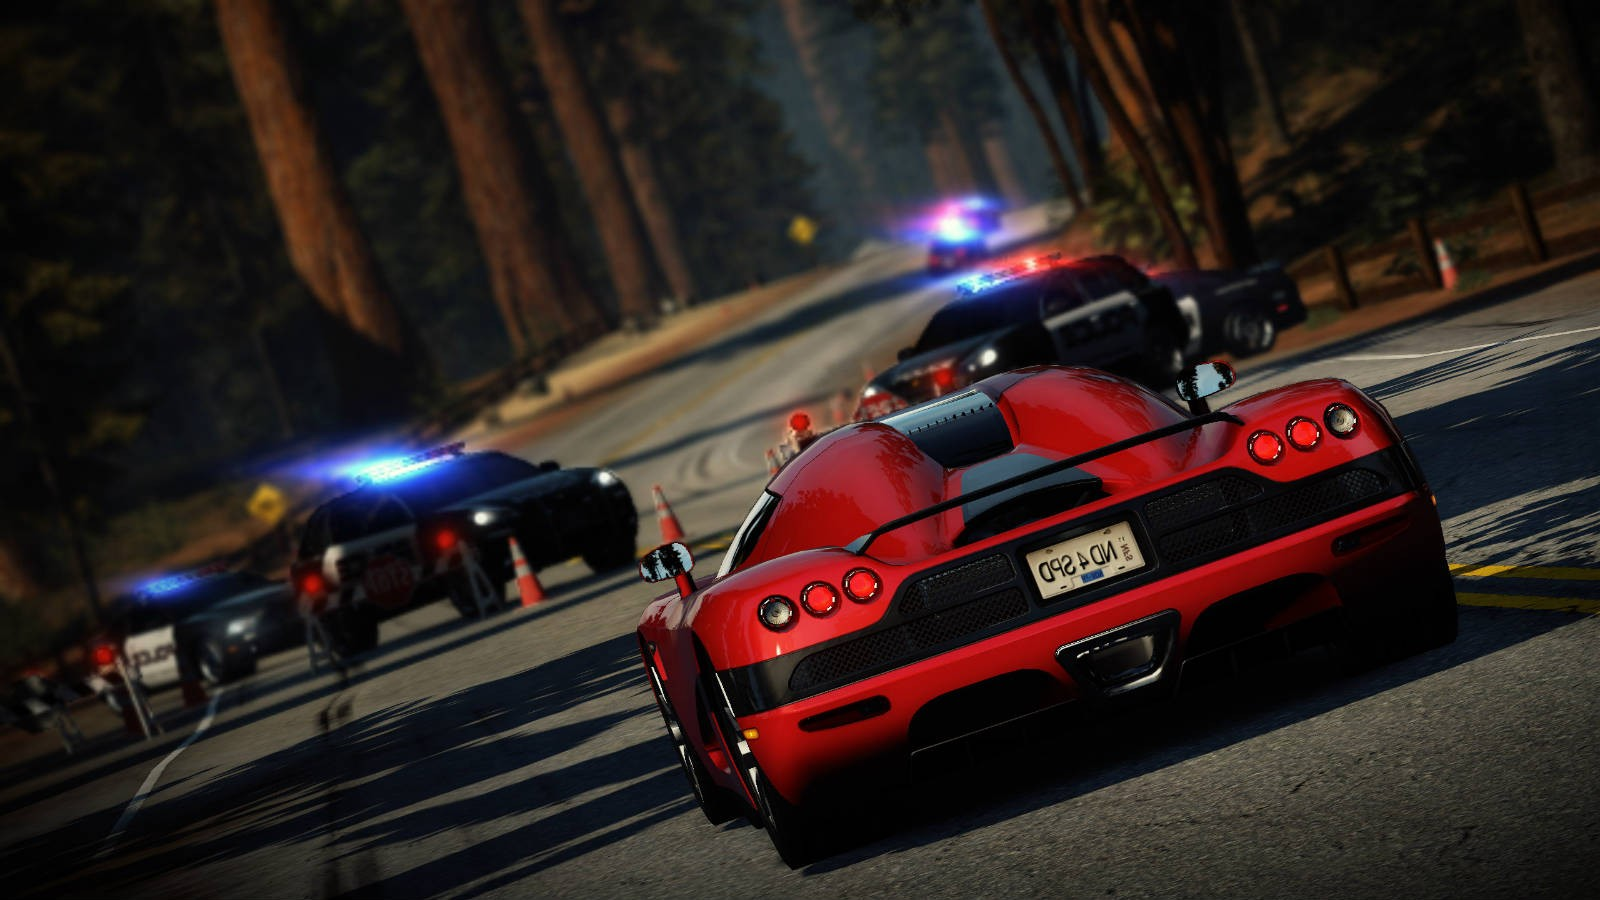 Need For Speed Movie Cars Names Igry Pro Policiyu 505847 Hd